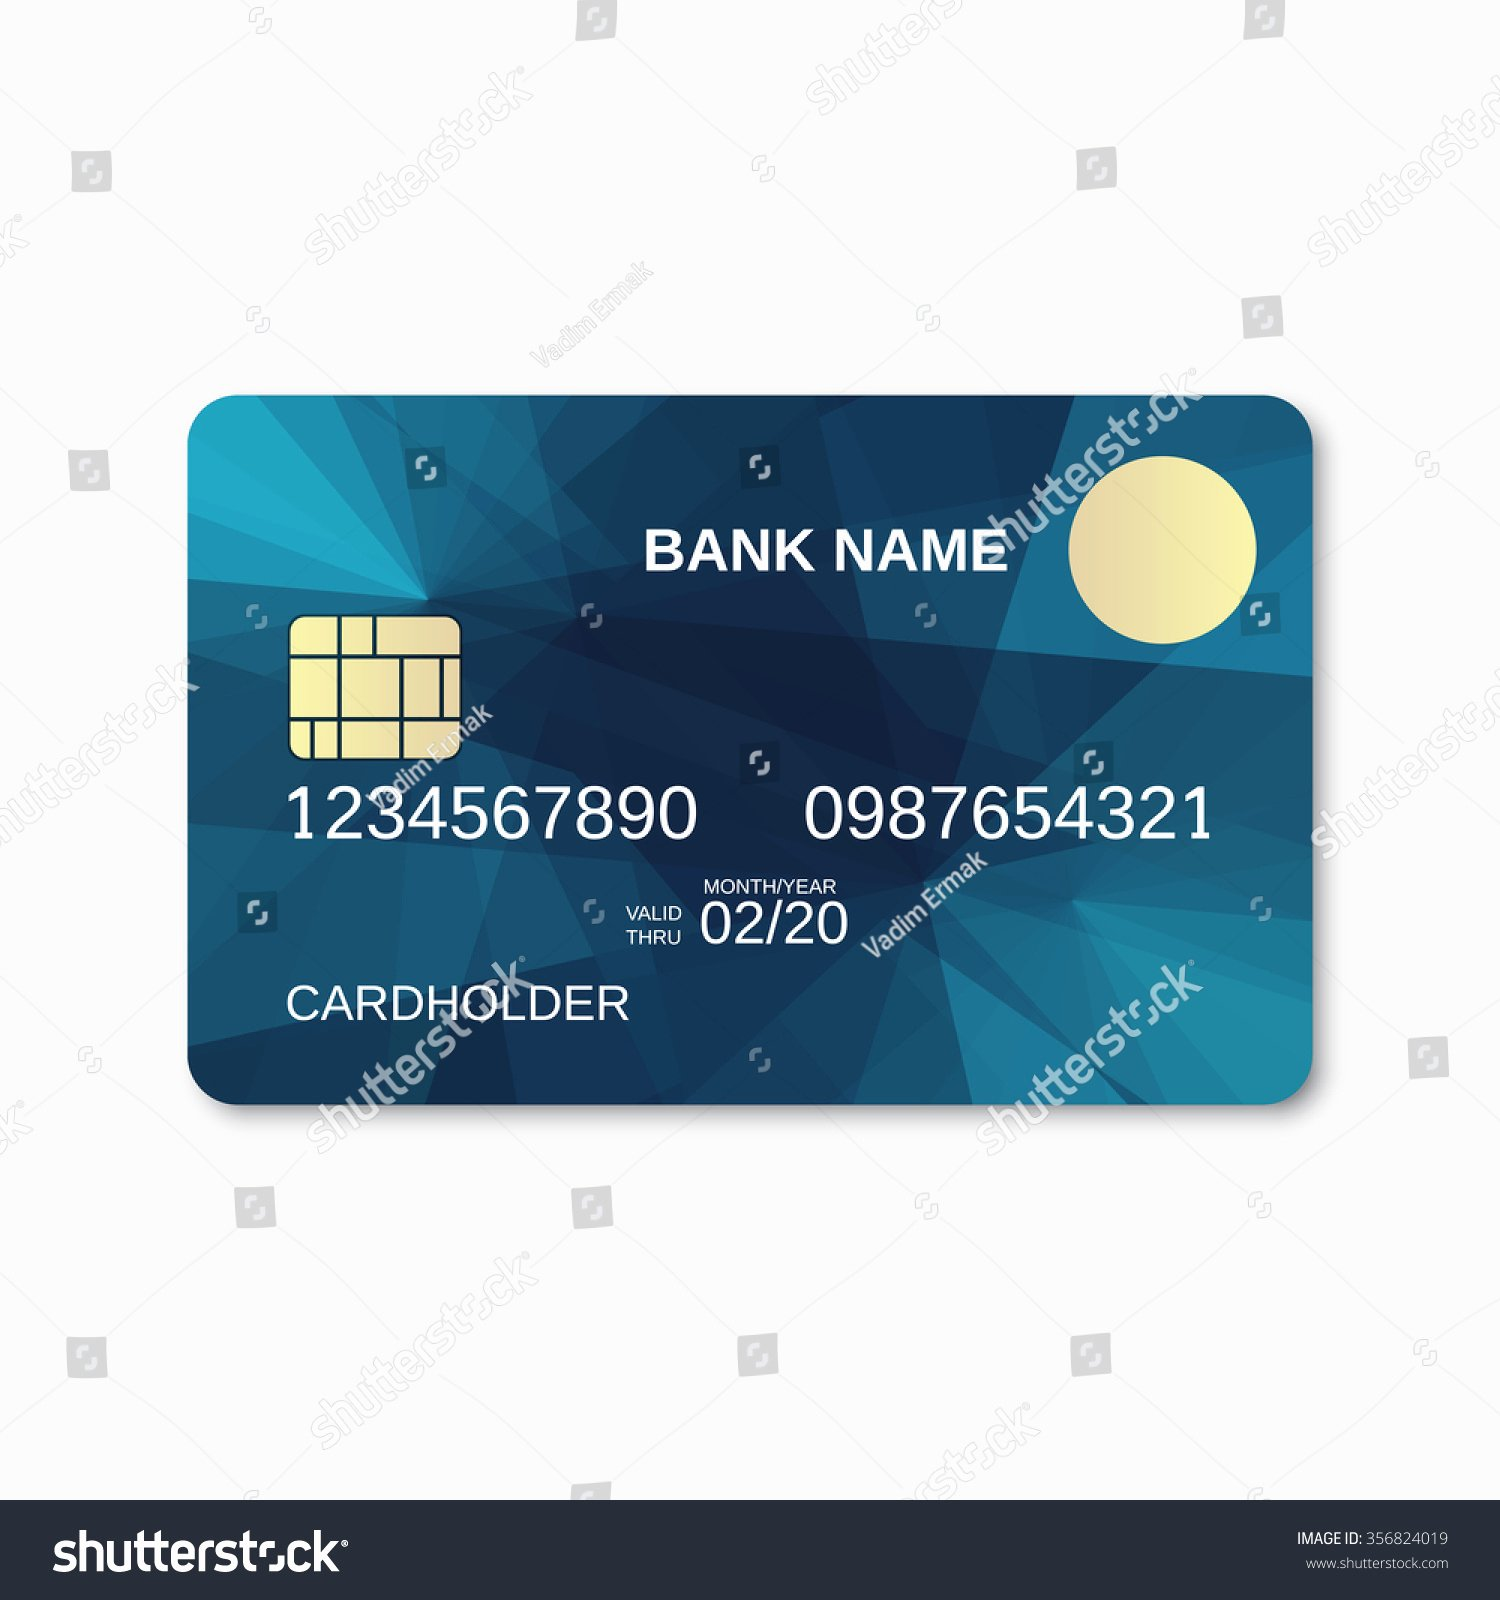 Bank Card Credit Card Discount Card Design Template